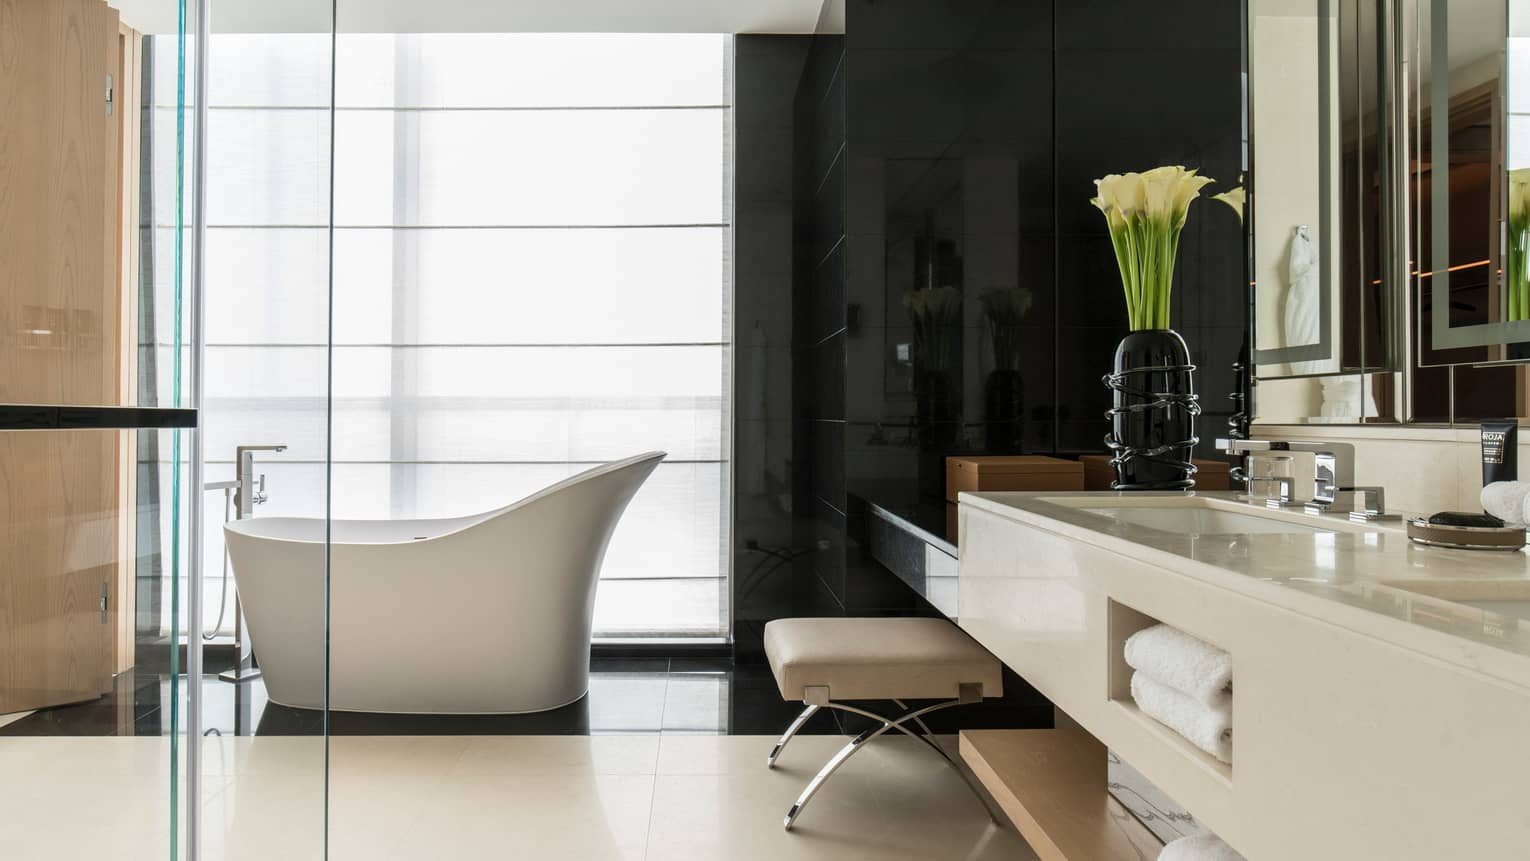 Large Four Seasons Deluxe Executive Suite bathroom with modern freestanding white tub, sink with fresh white flowers